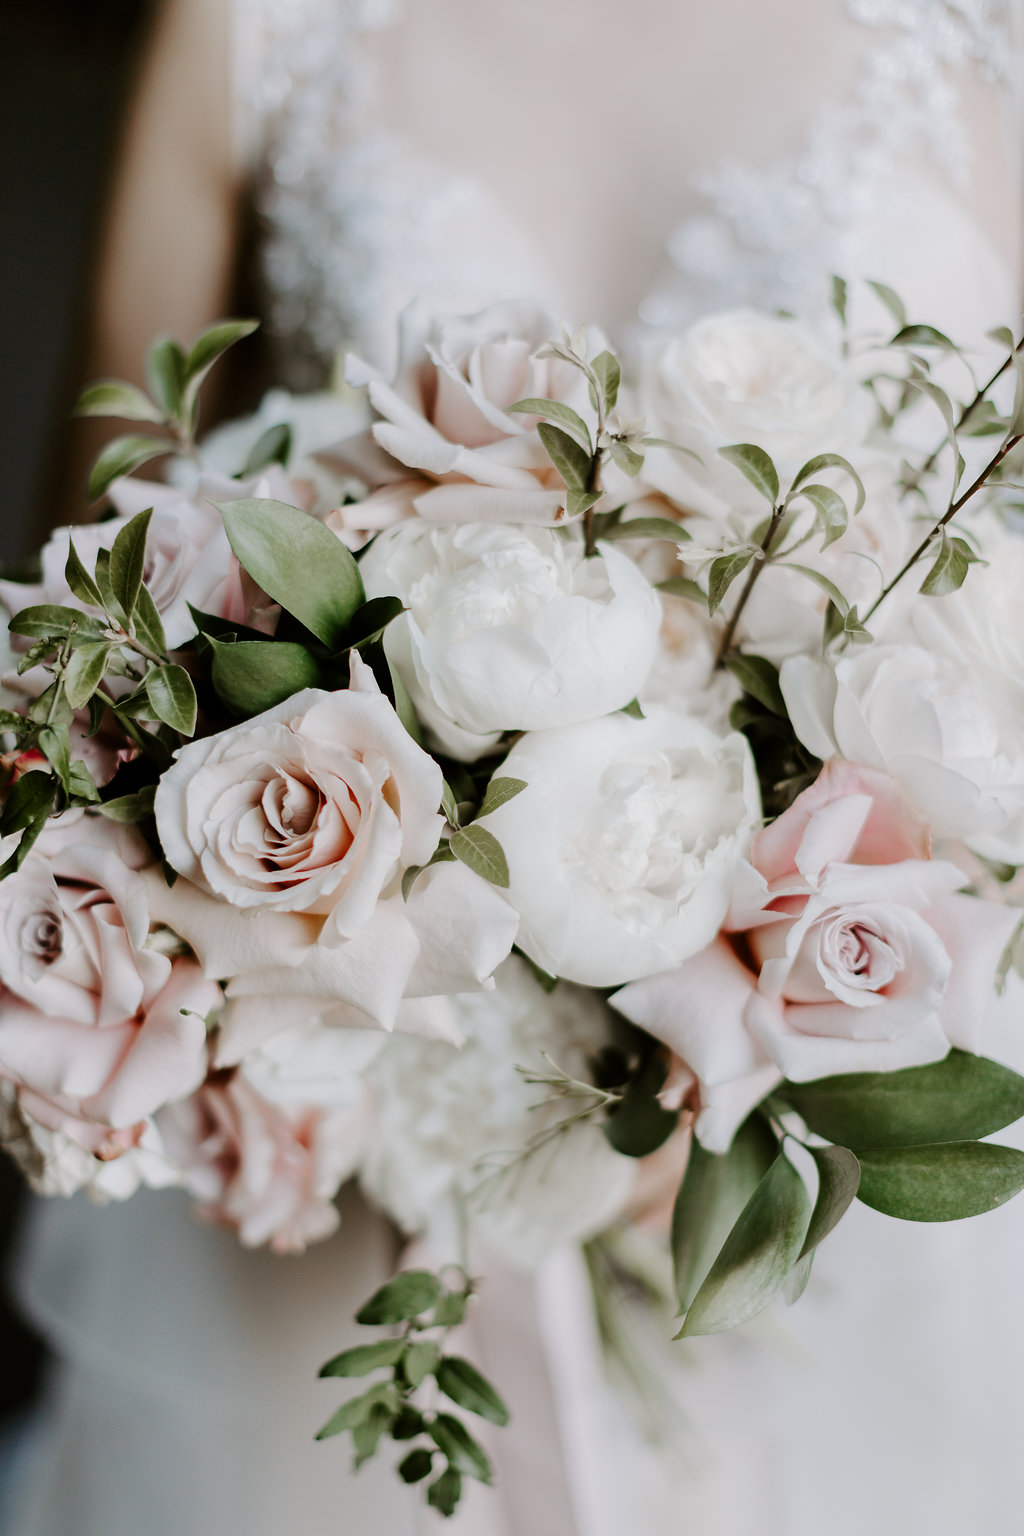 Romantic wedding flowers featuiring peonies and roses